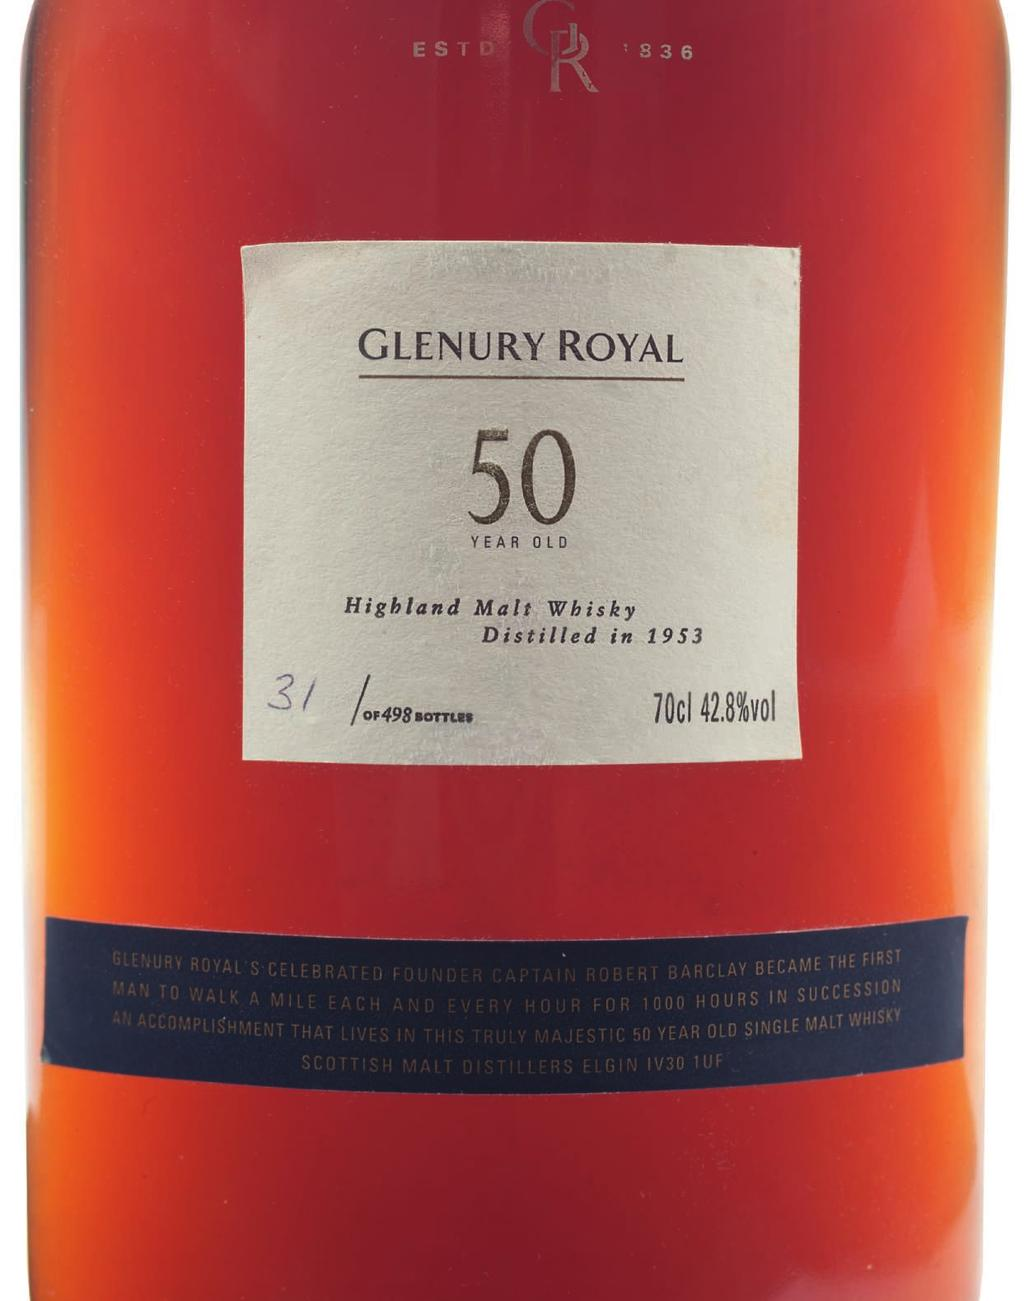 62 Glenury Royal 50 Year Old Highland Distilled 1953, 42.